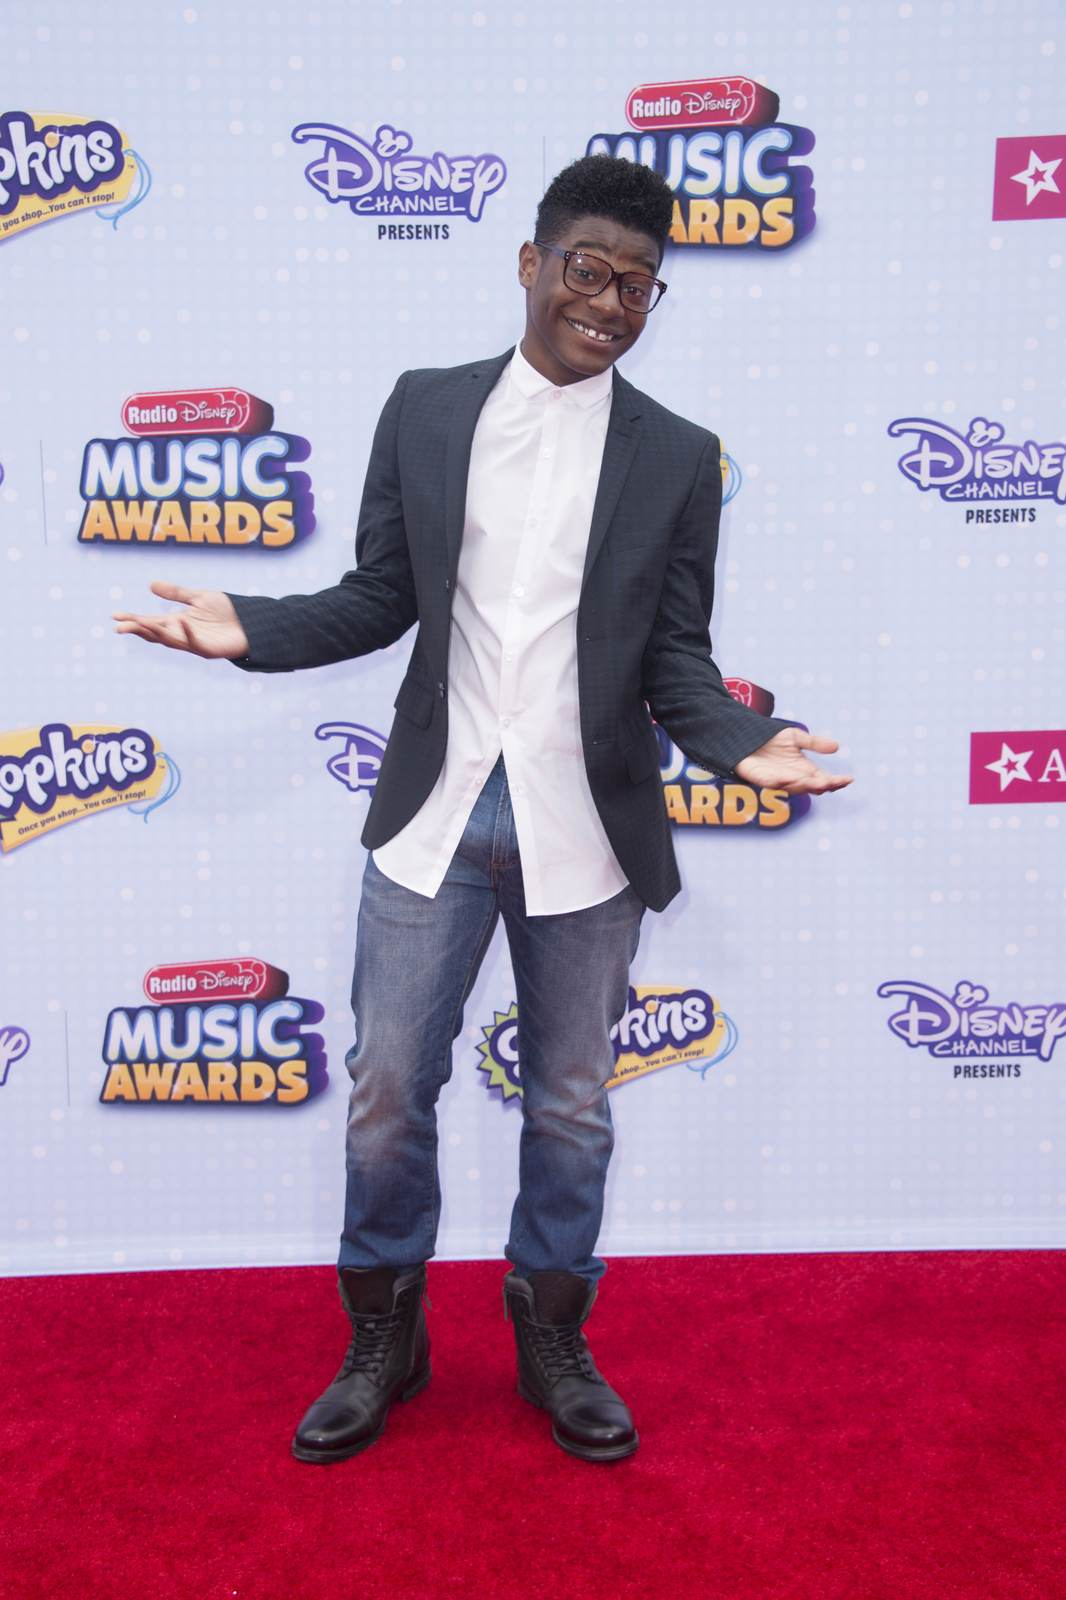 disney music awards14 Radio Disney Music Awards 2015   Winners